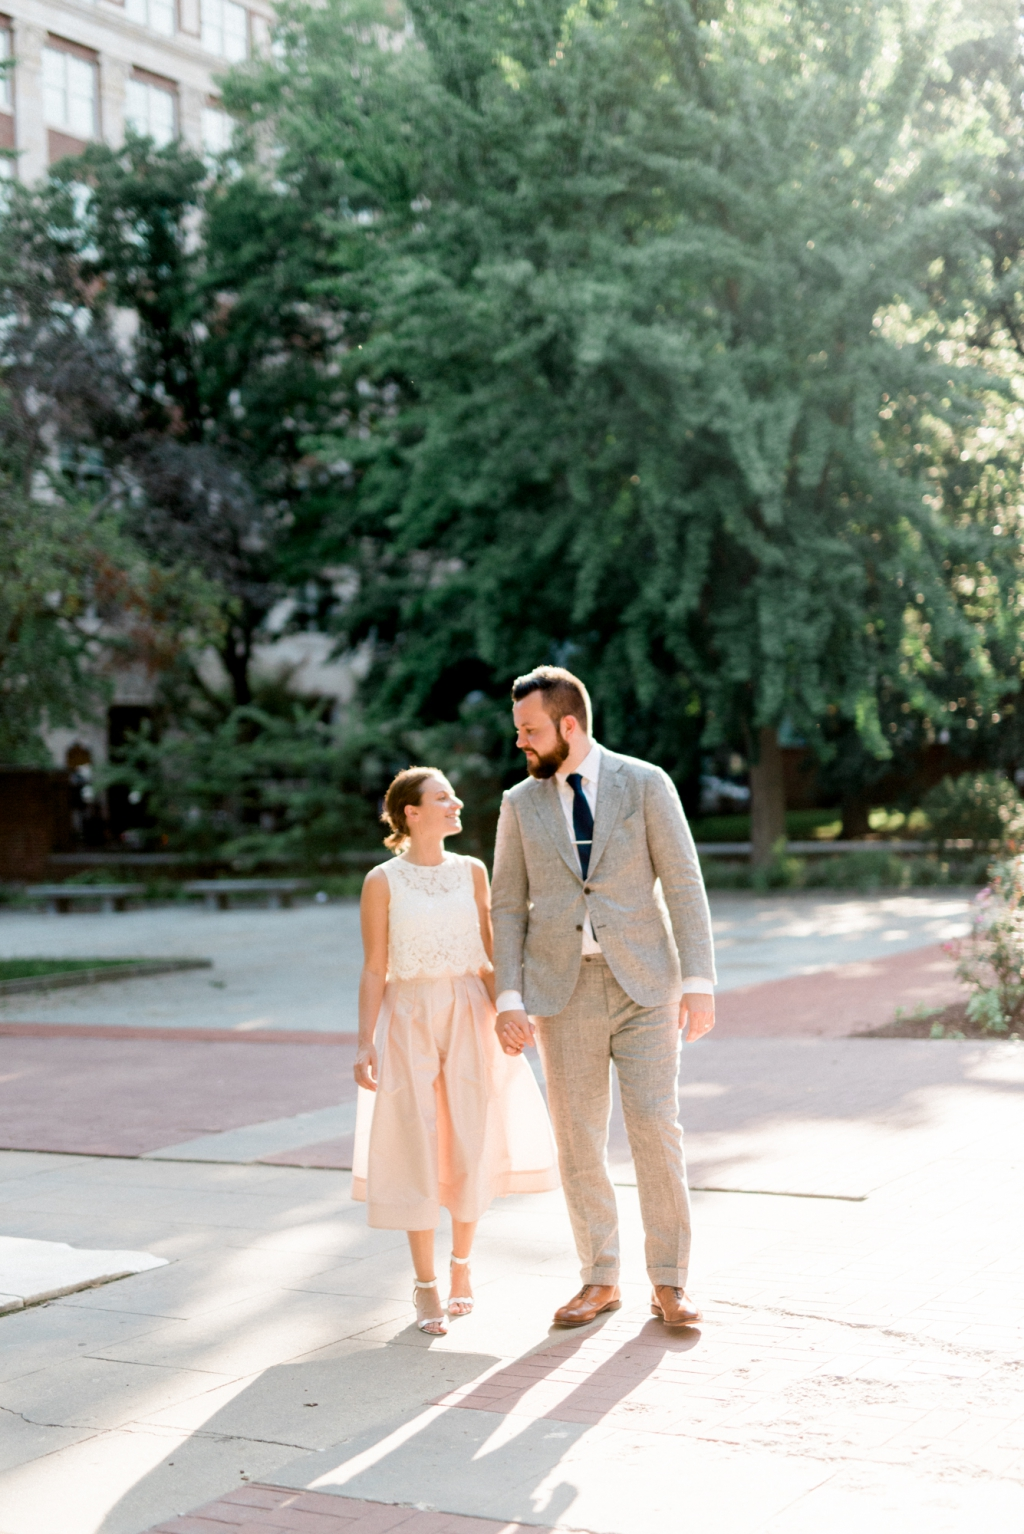 haley-richter-photography-intimate-summer-wedding-palomar-hotel-old-city-philadelphia-091